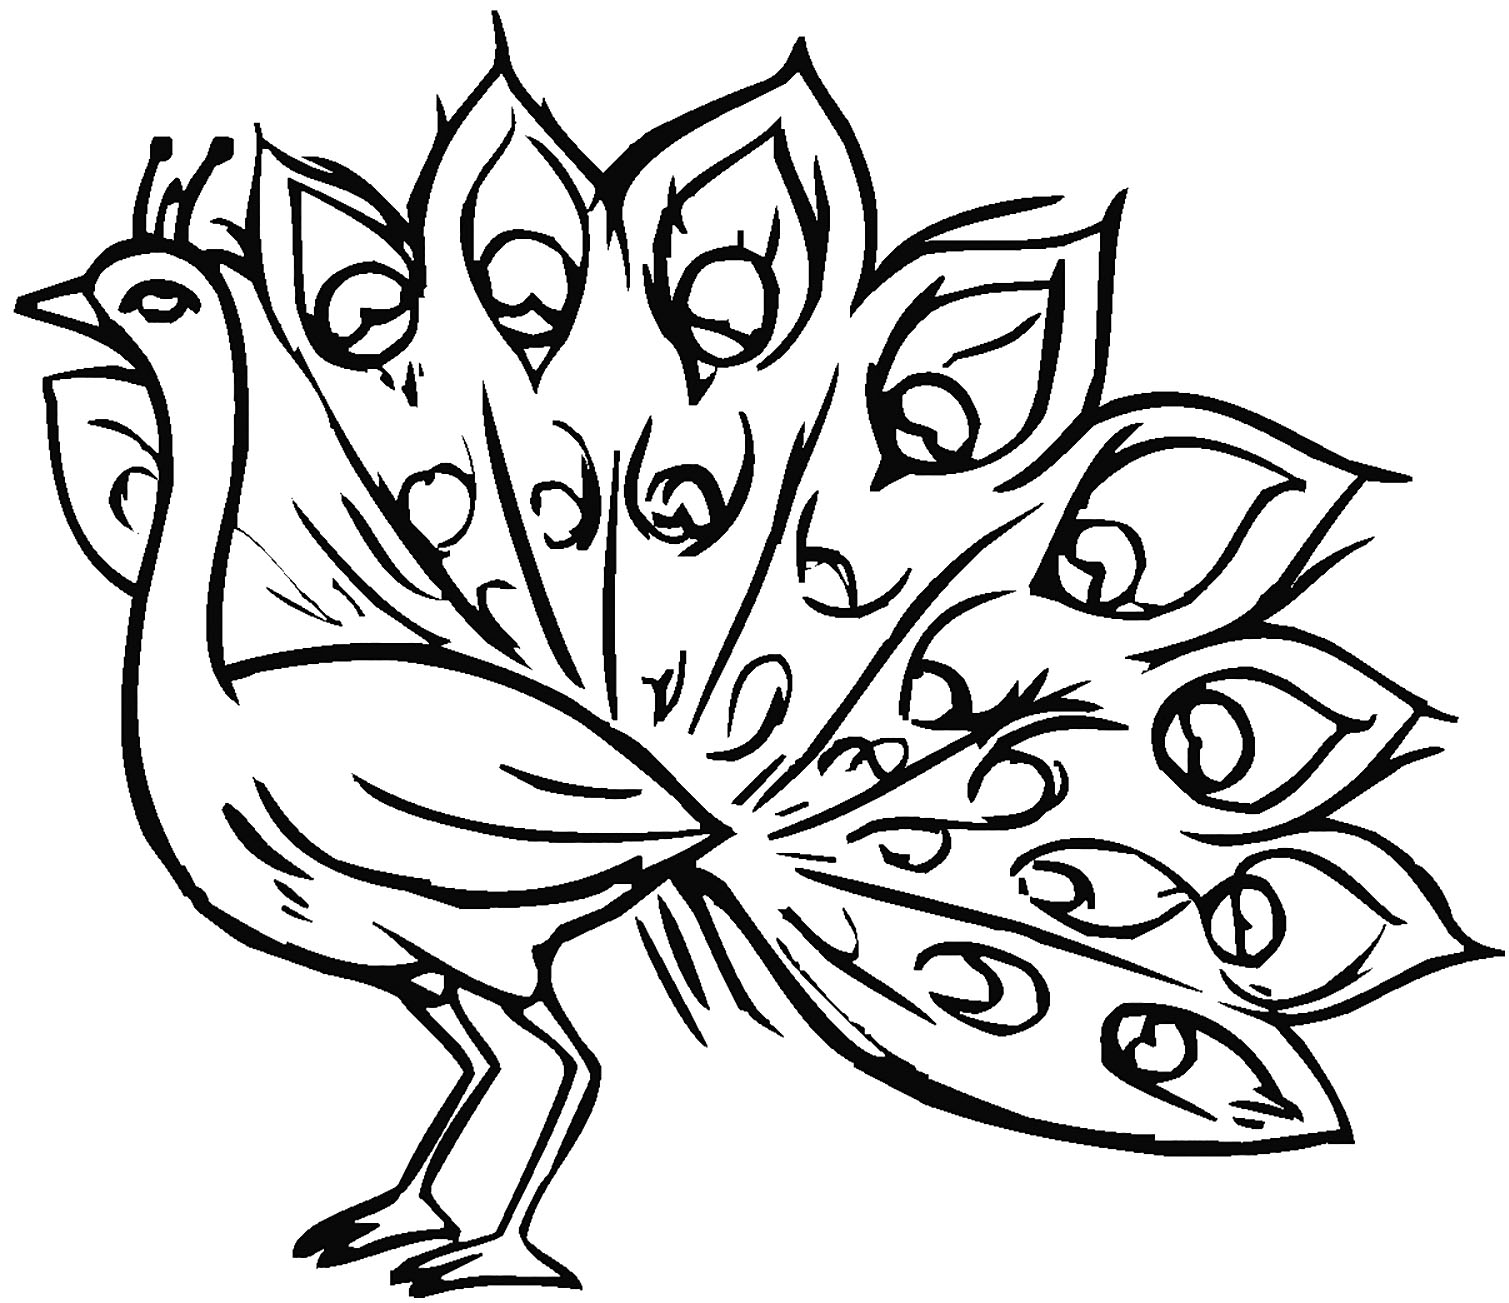 coloring pages of peacock peacocks to download for free peacocks kids coloring pages of coloring peacock pages